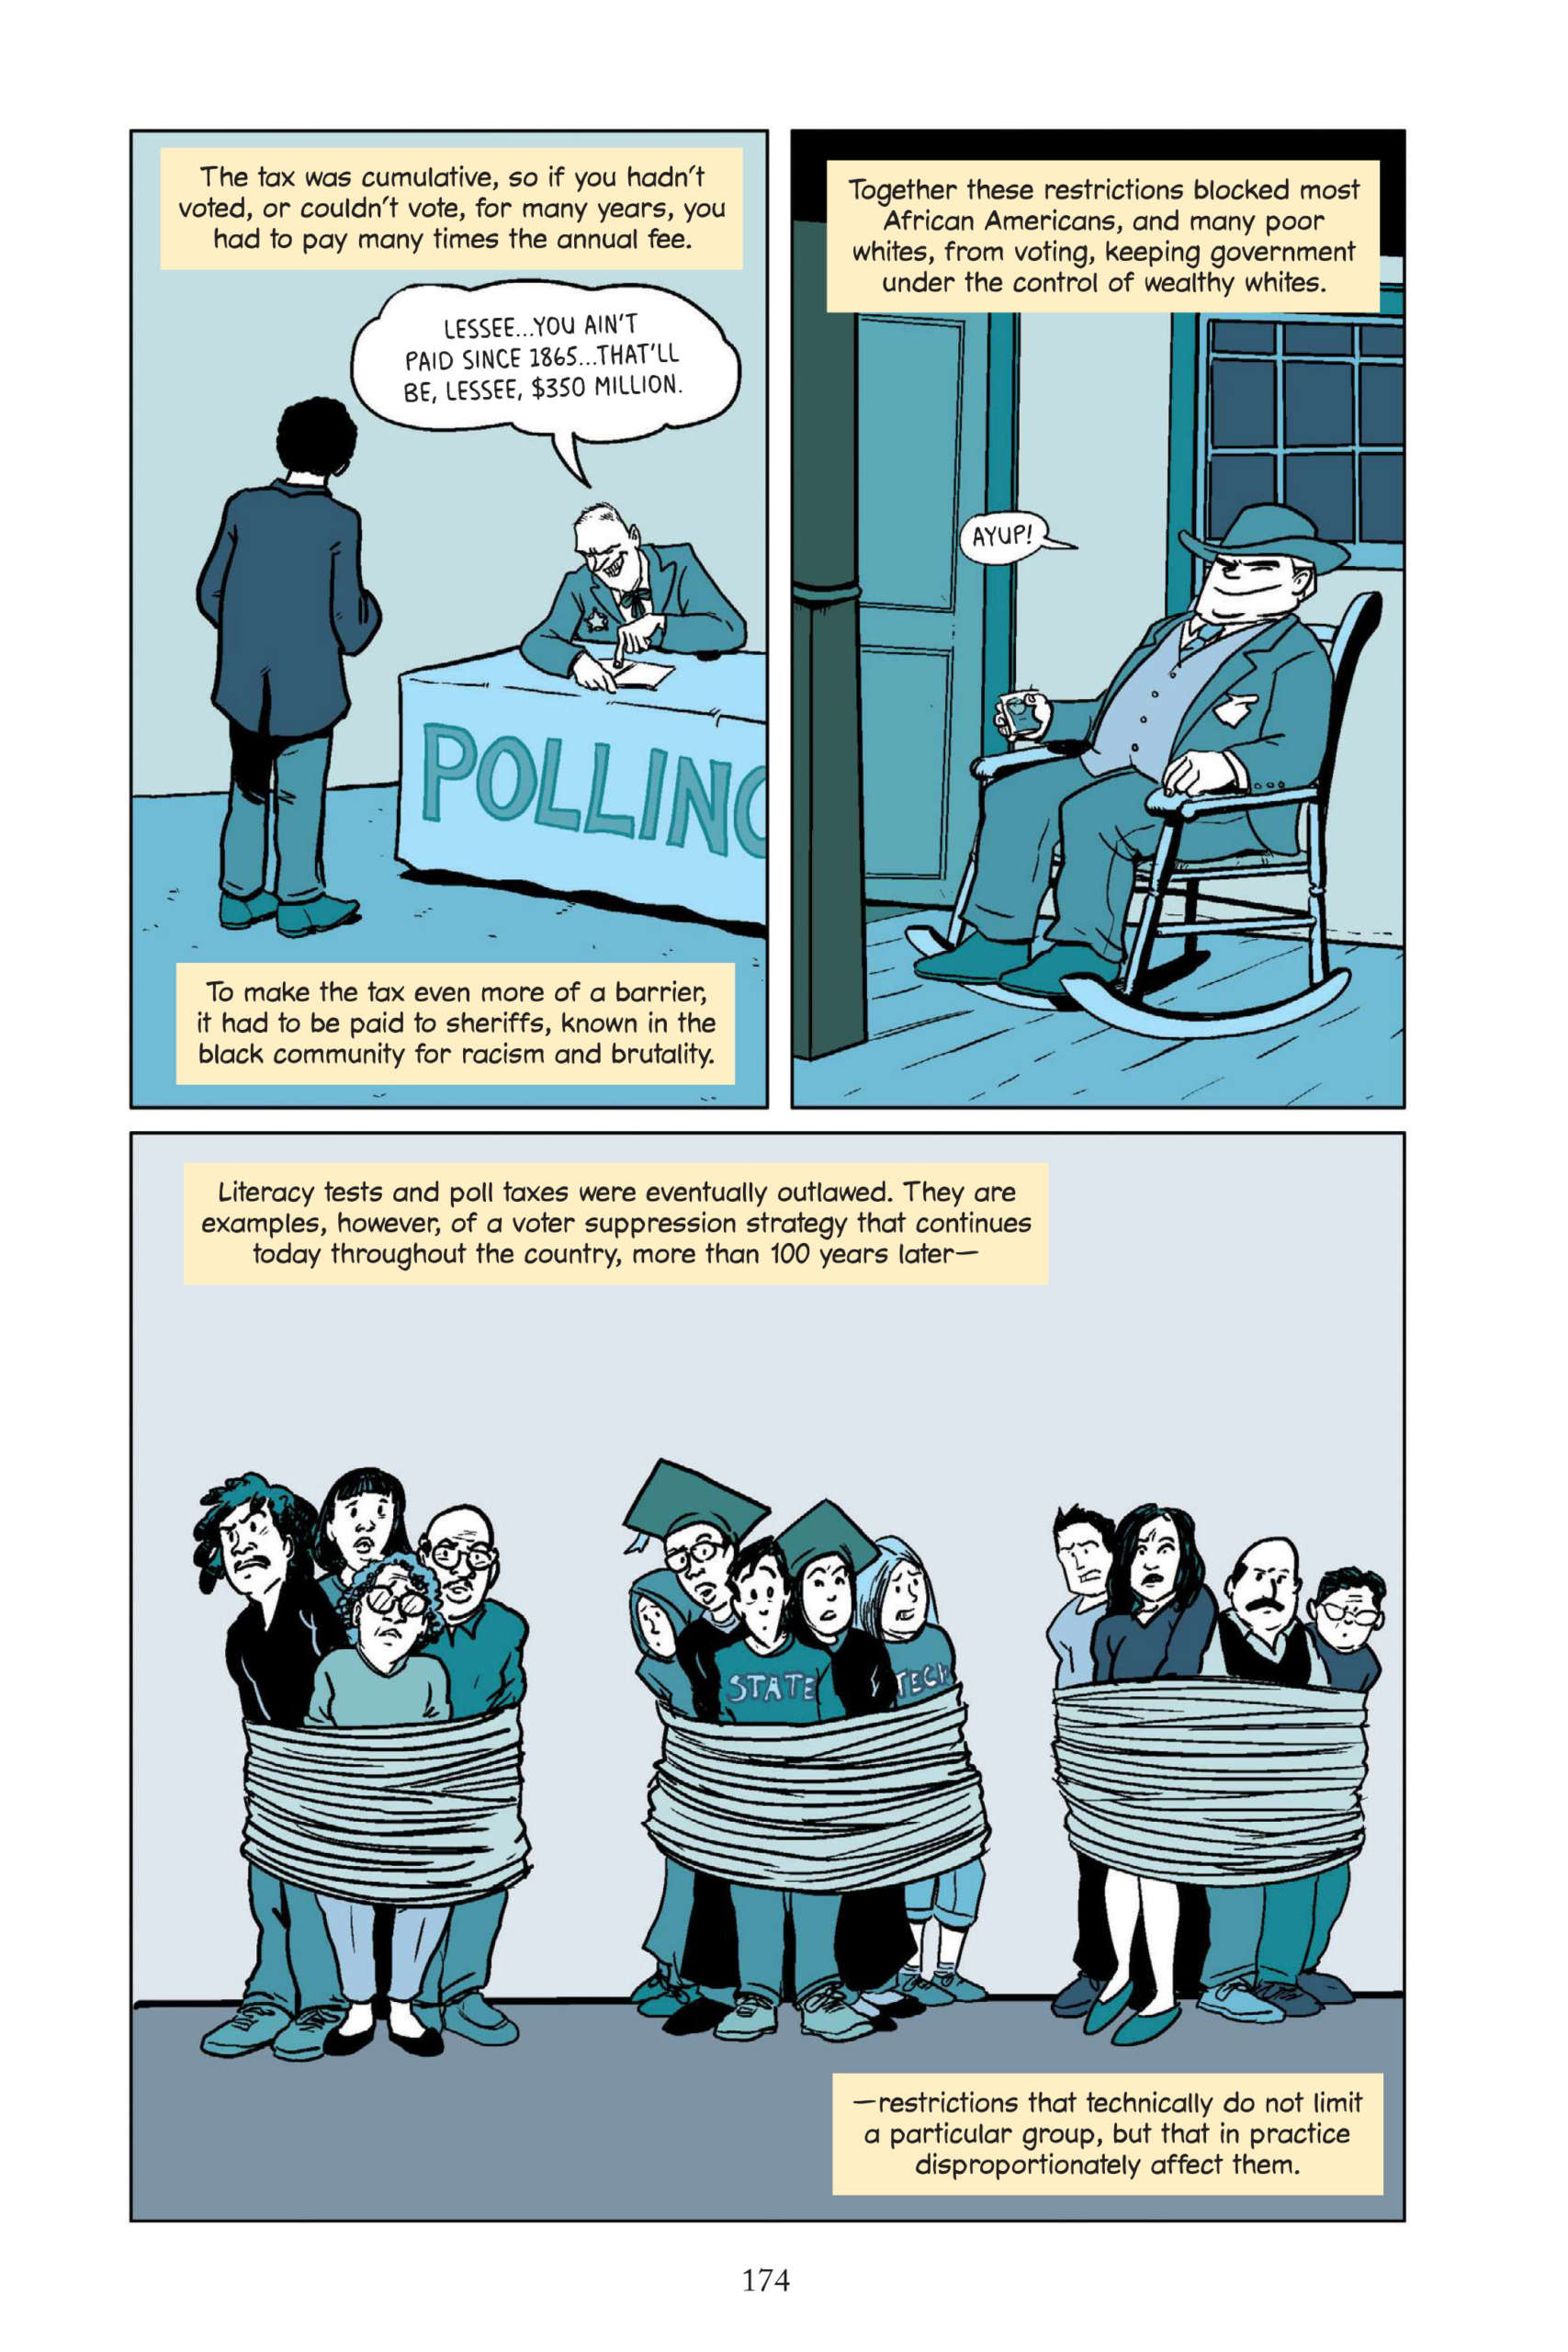 Unrig: How to Fix Our Broken Democracy - Who Votes? page 5